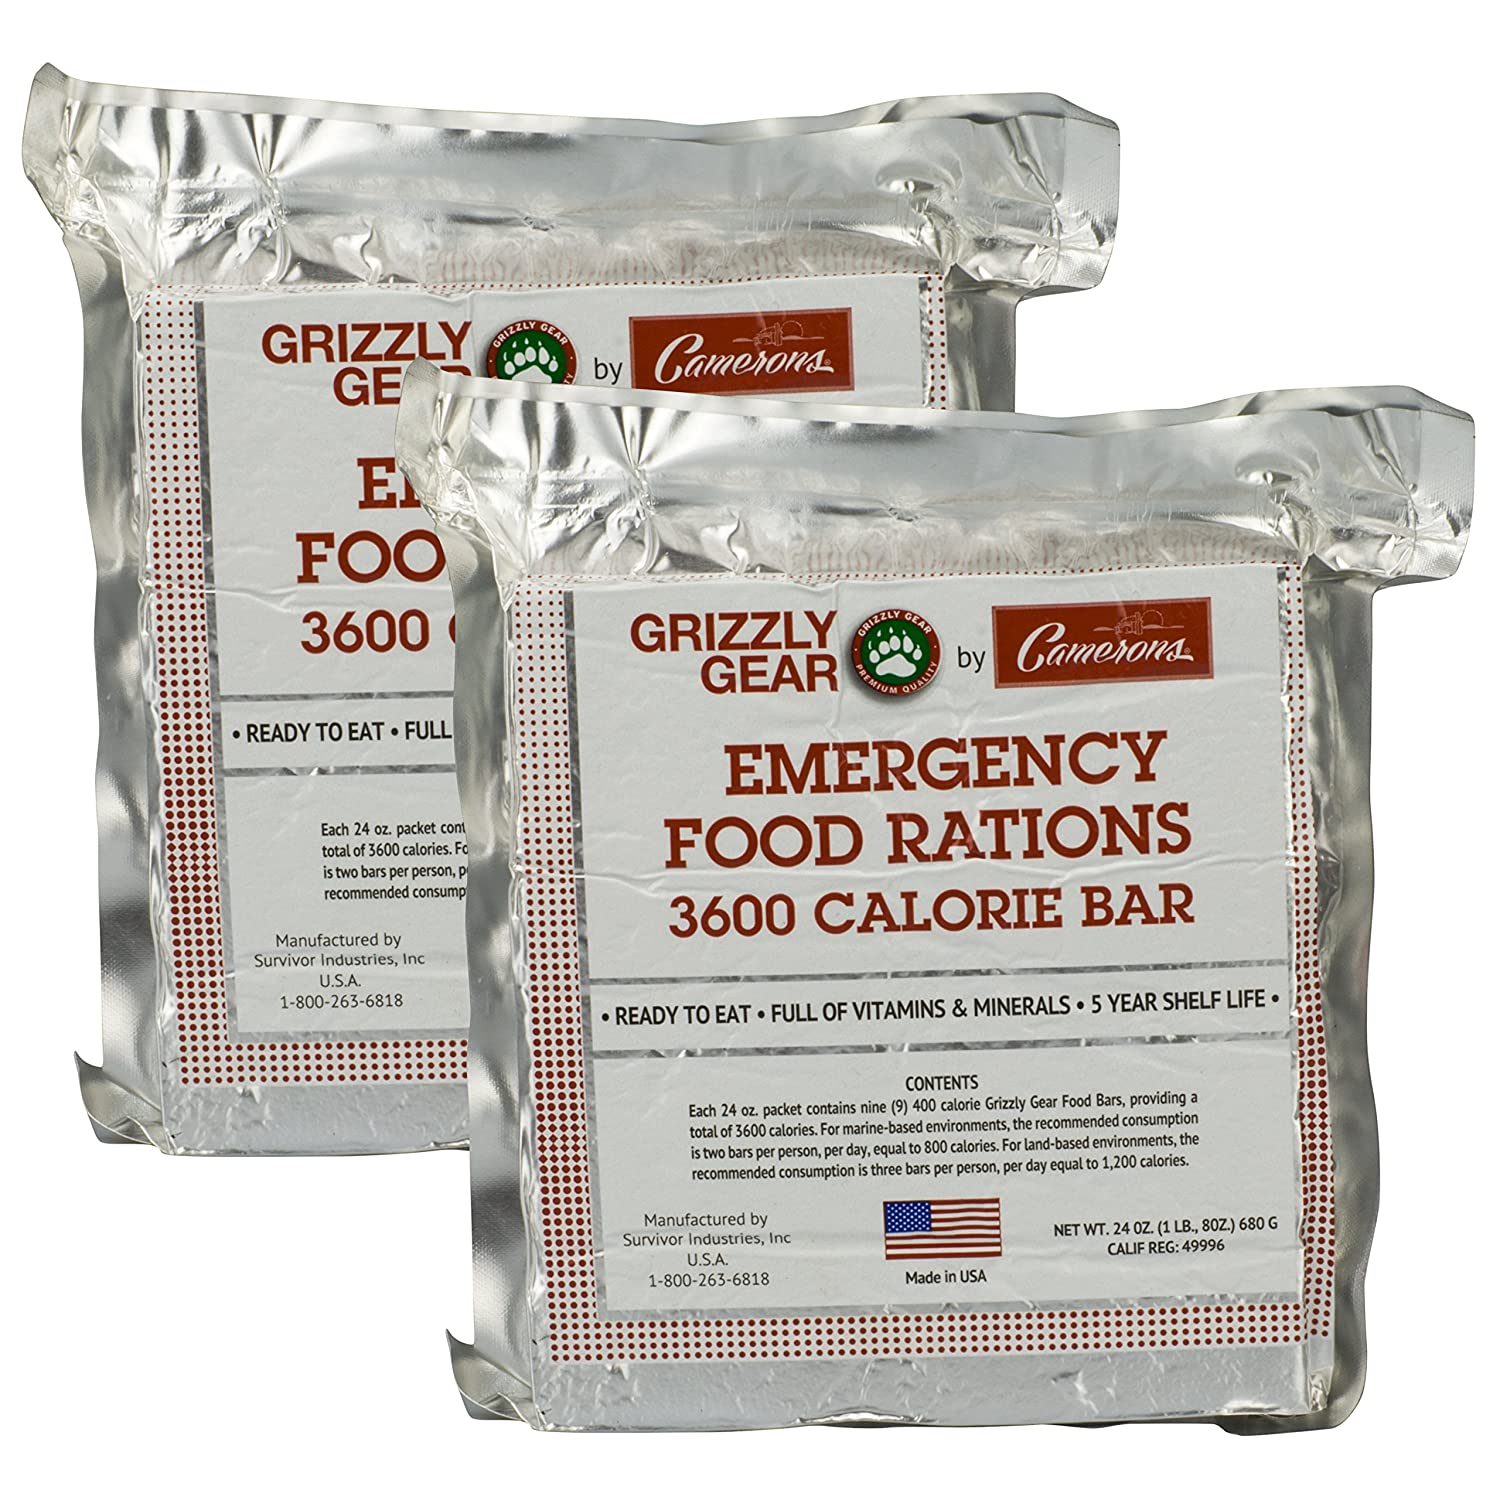 Emergency Food Rations 2 Pack - 3600 Calorie Bar - 6 Day Supply - Less Sugar and More Nutrients Than Other Leading Brands - (5 Year Shelf Life) Grizzly Gear